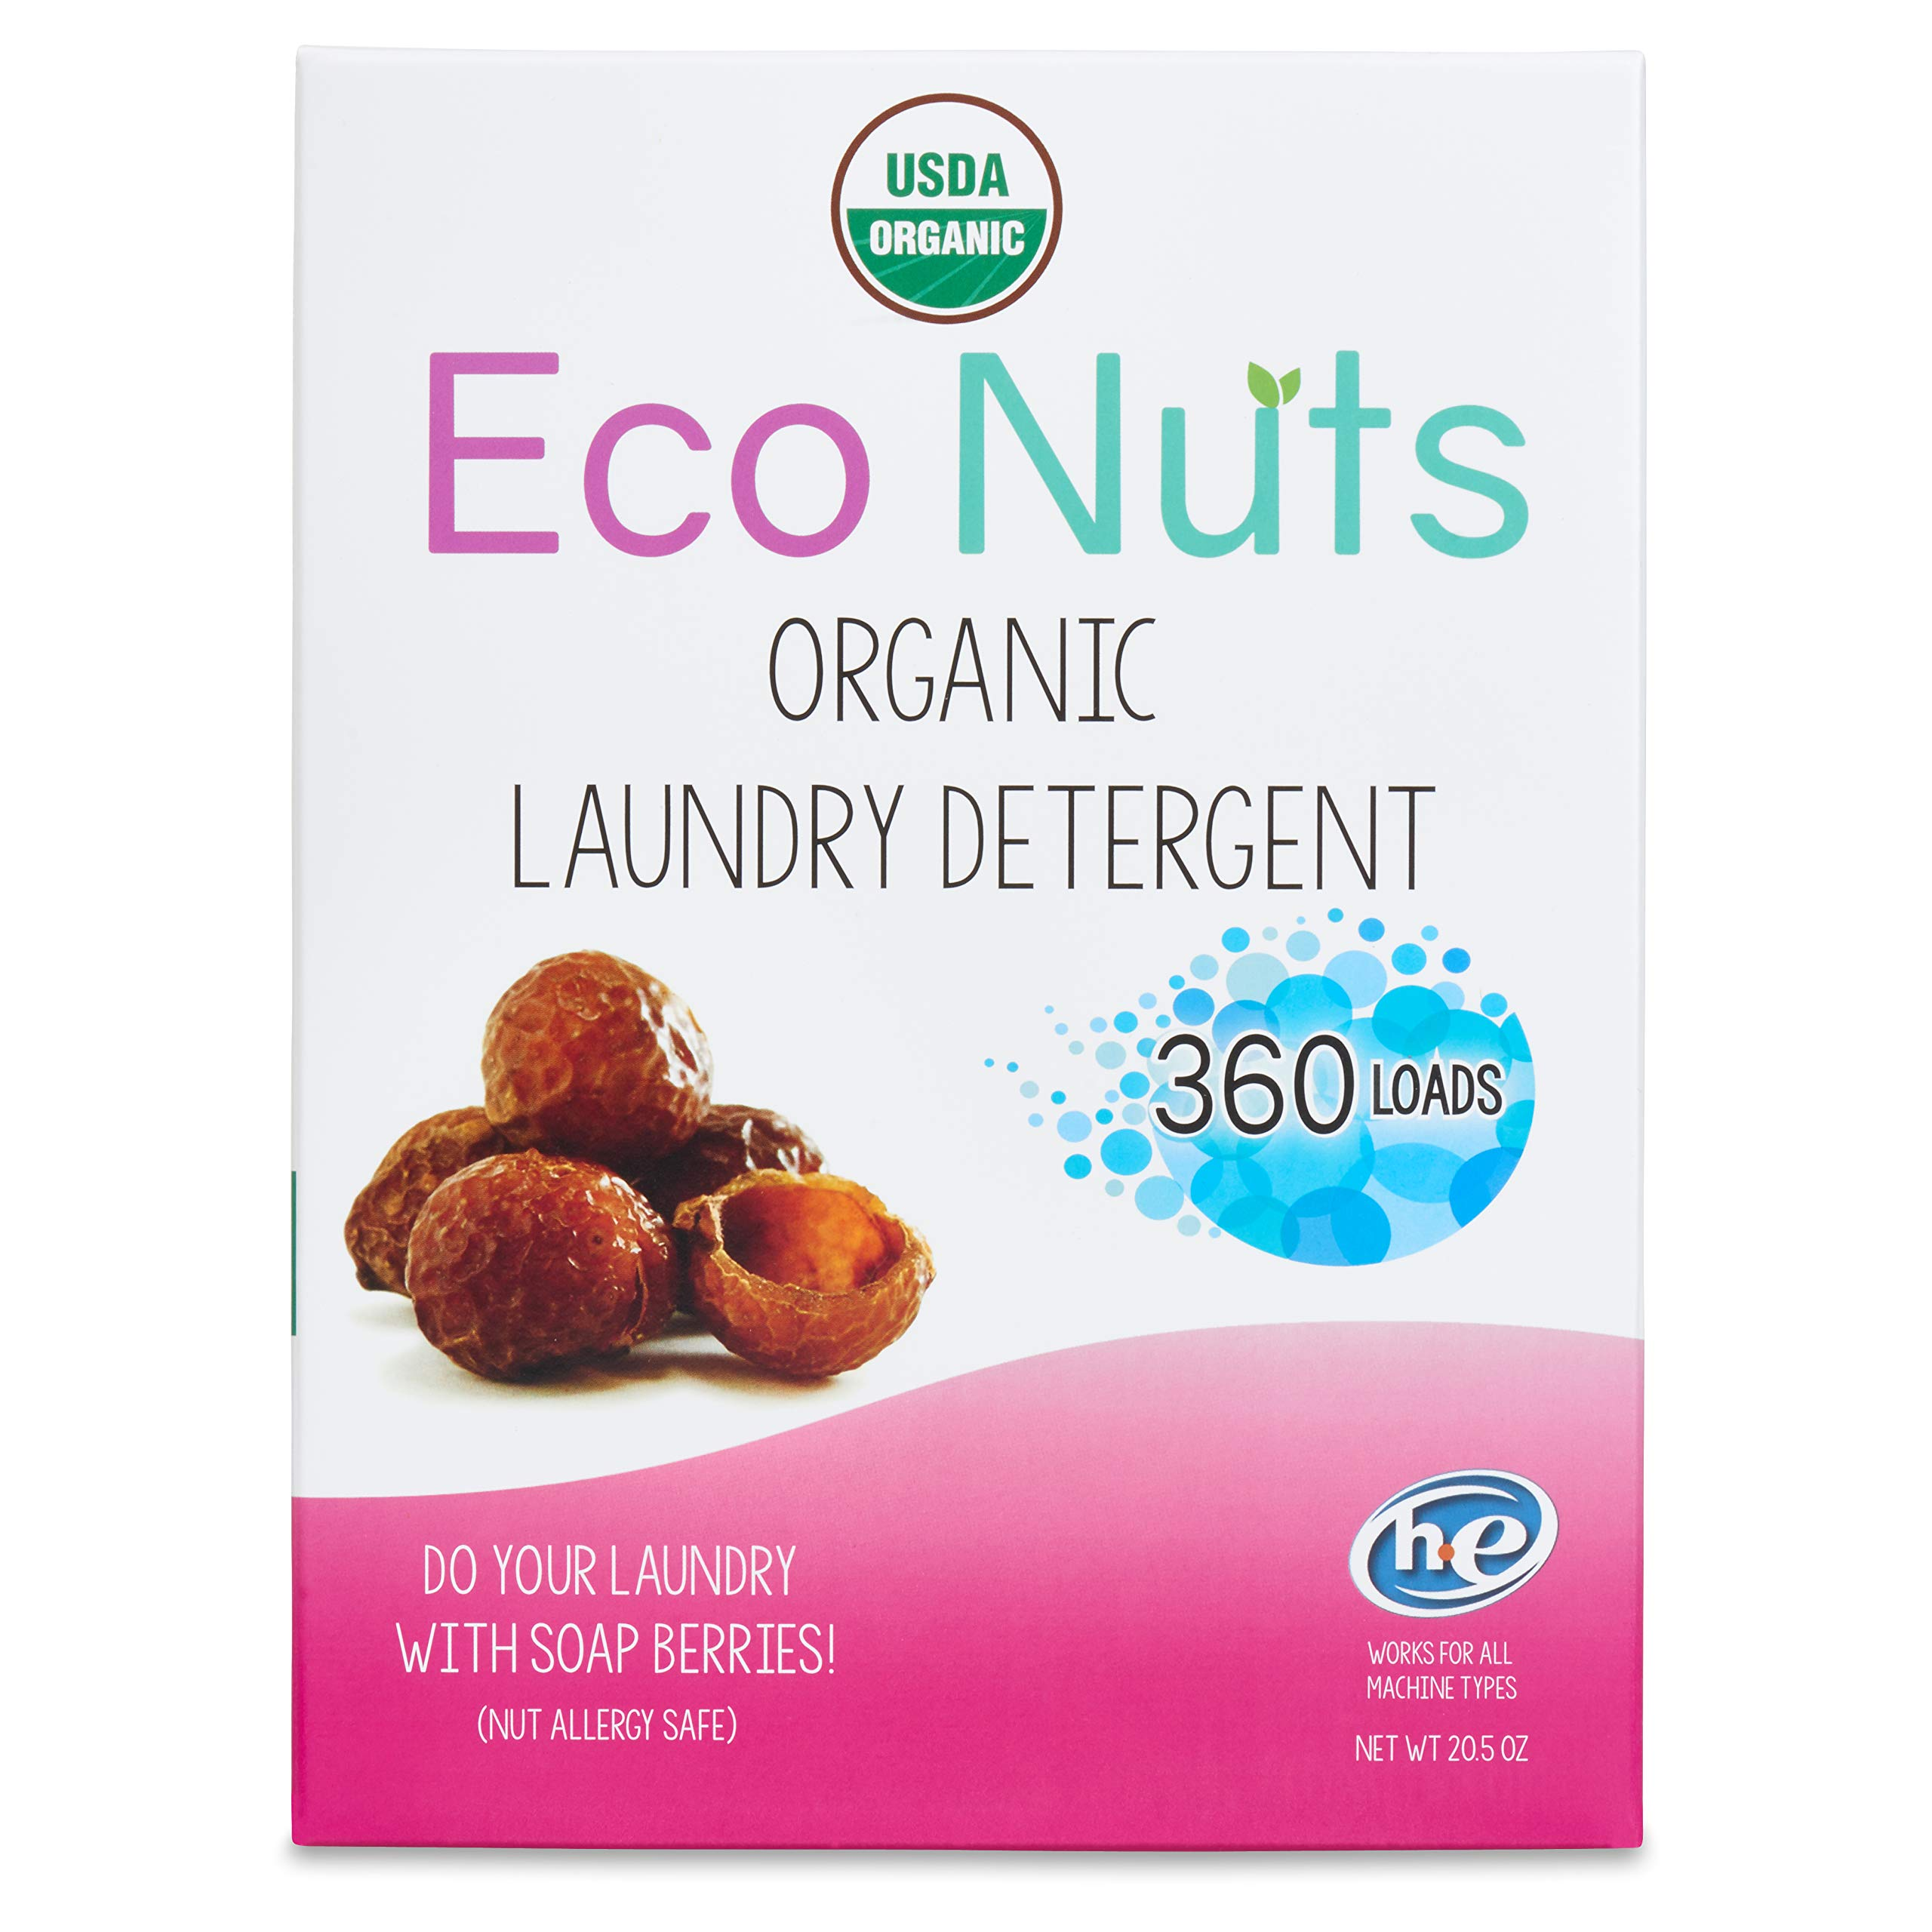 Eco Nuts USDA Organic Laundry Detergent, 20.5 Ounces for 360 Loads by Eco Nuts